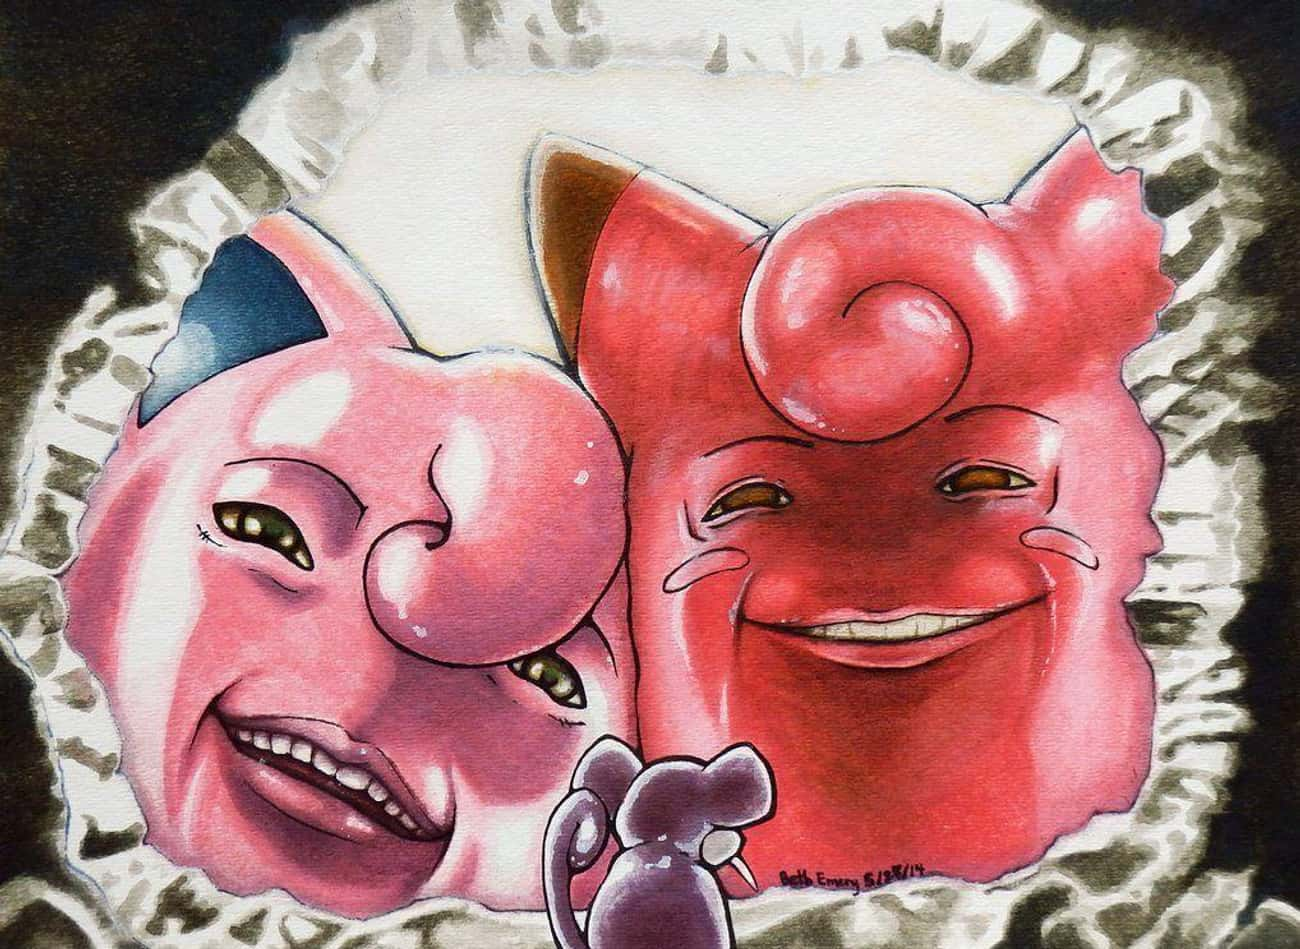 Titans Clefairy And Jigglypuff is listed (or ranked) 4 on the list This Artist Creates Horrifying Pokemon And Attack On Titan Crossovers